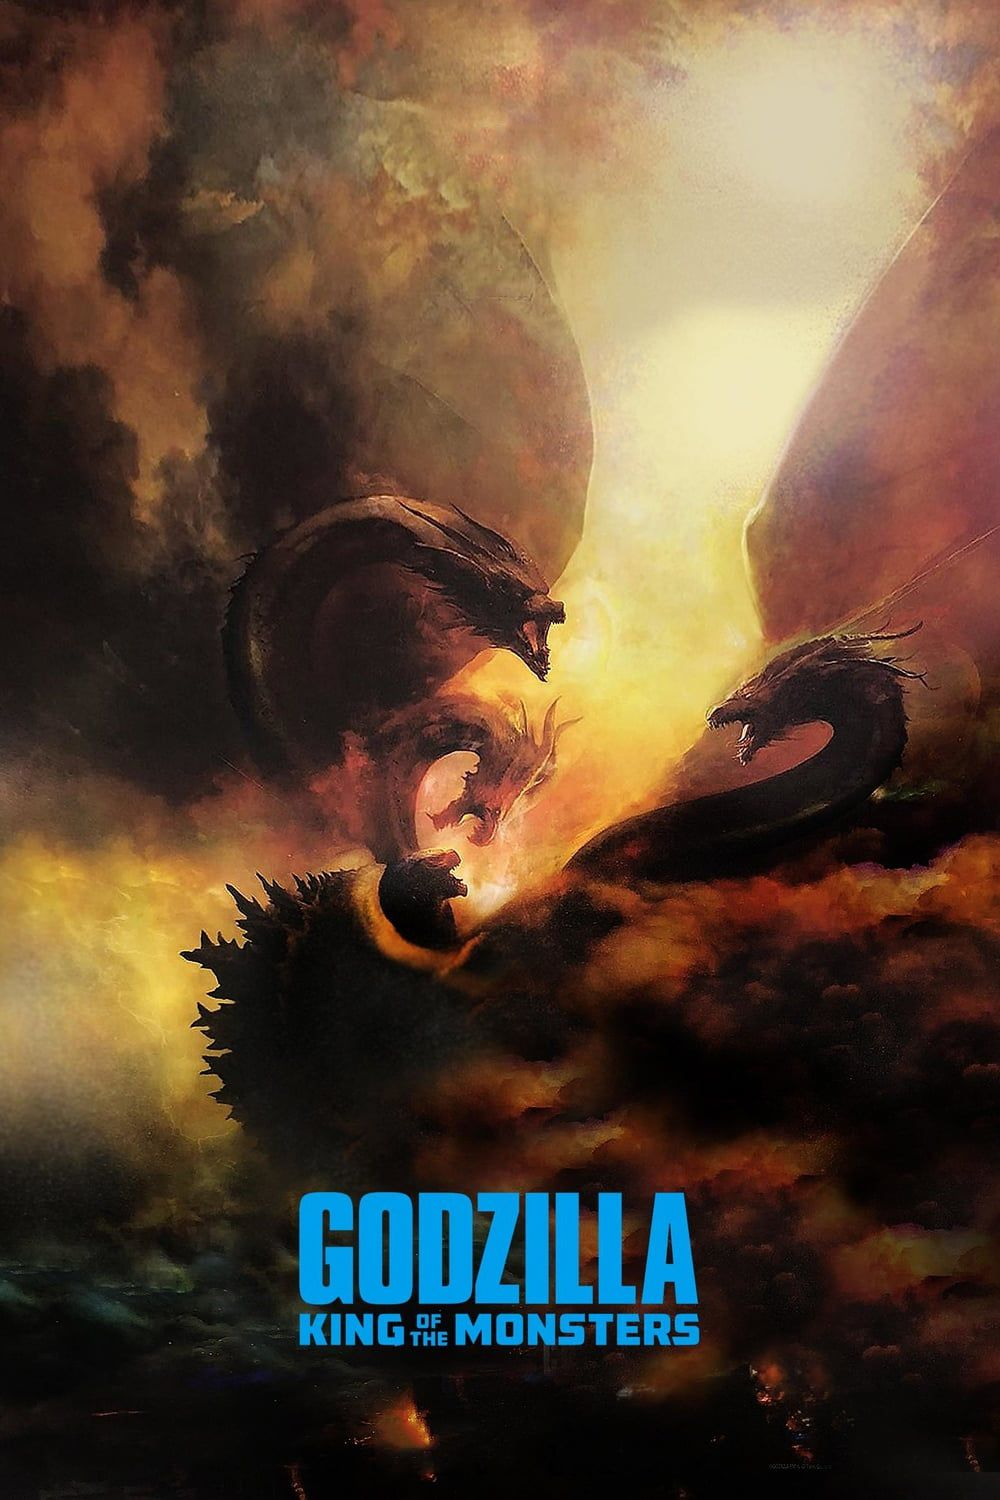 Download godzilla 2014 full movie free online hd: new godzilla.